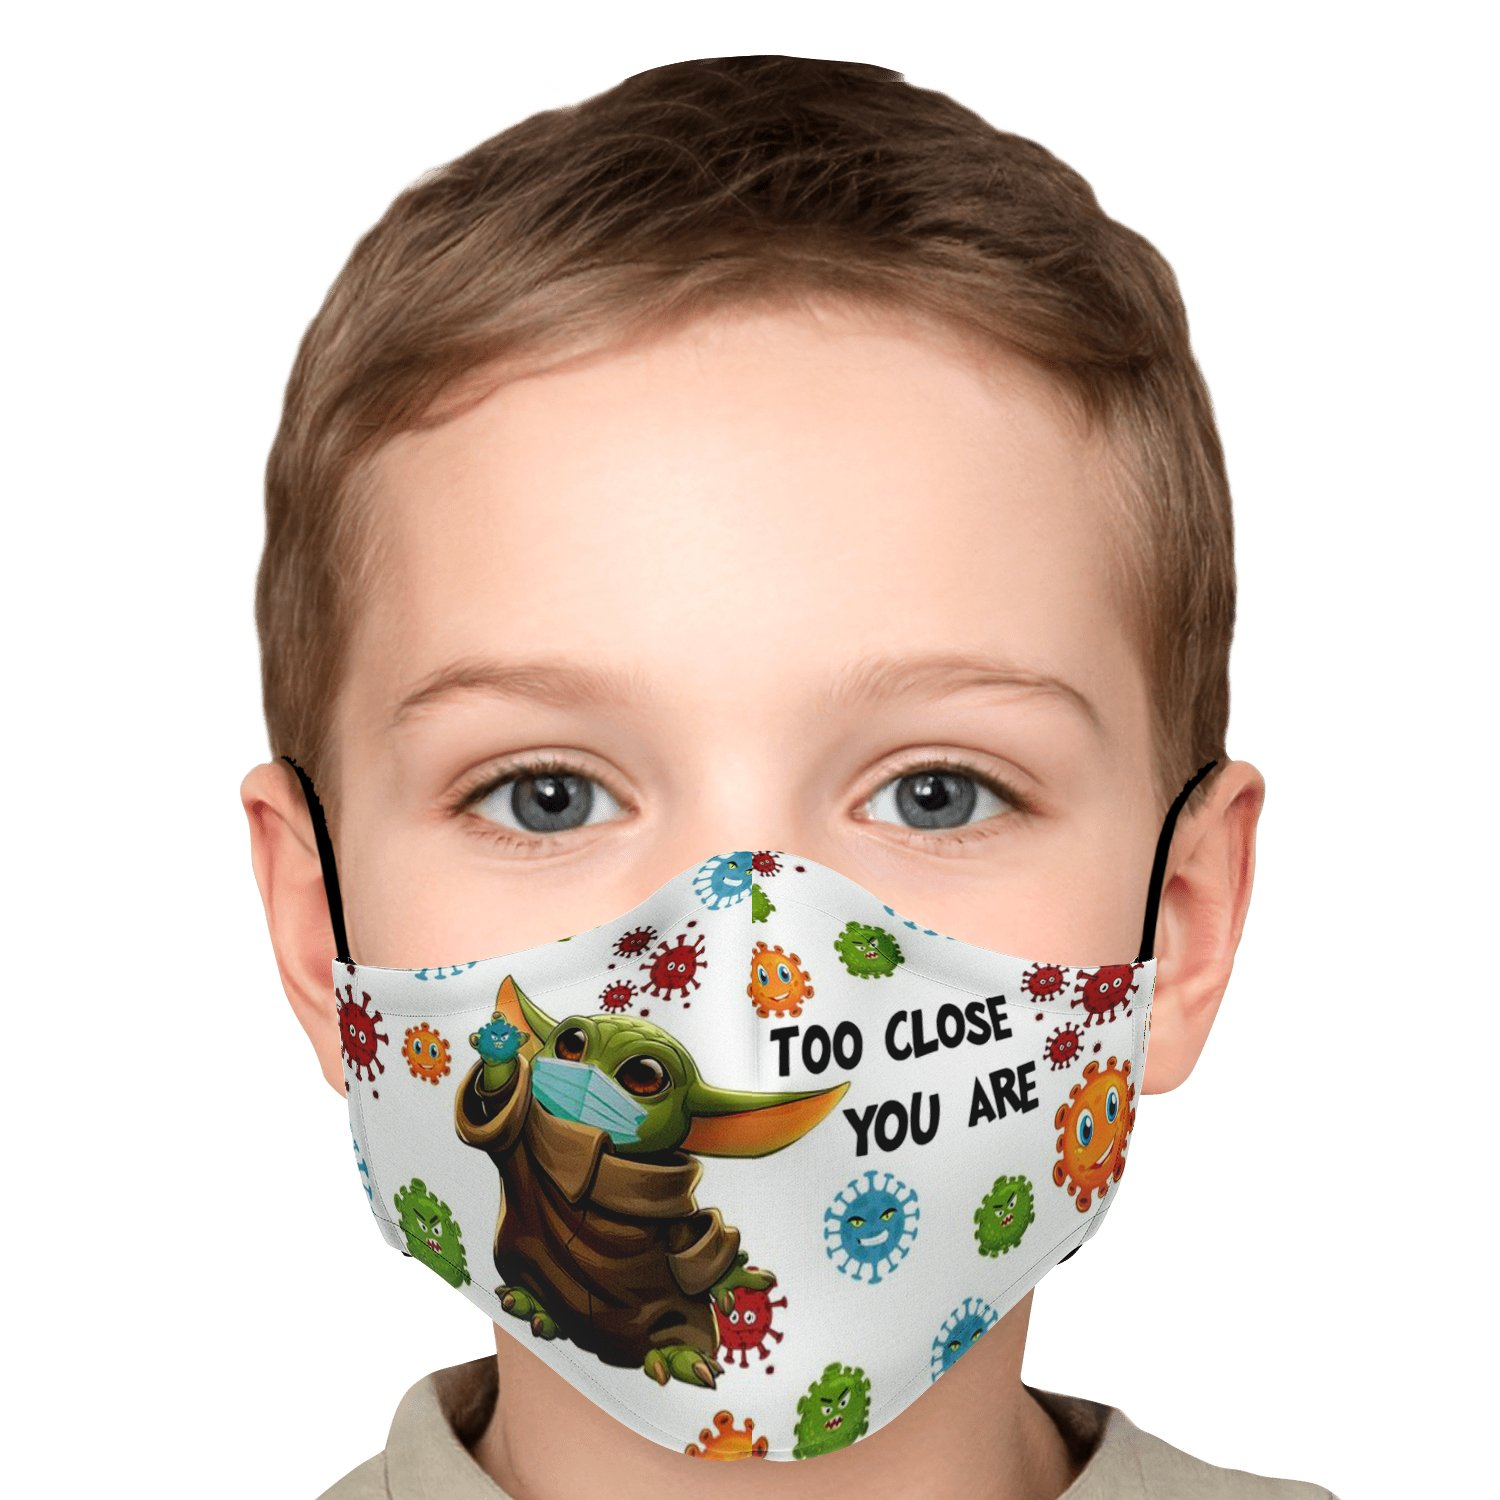 Too Close You Are Stay Away Covid-19 Baby Yoda Face Mask 6